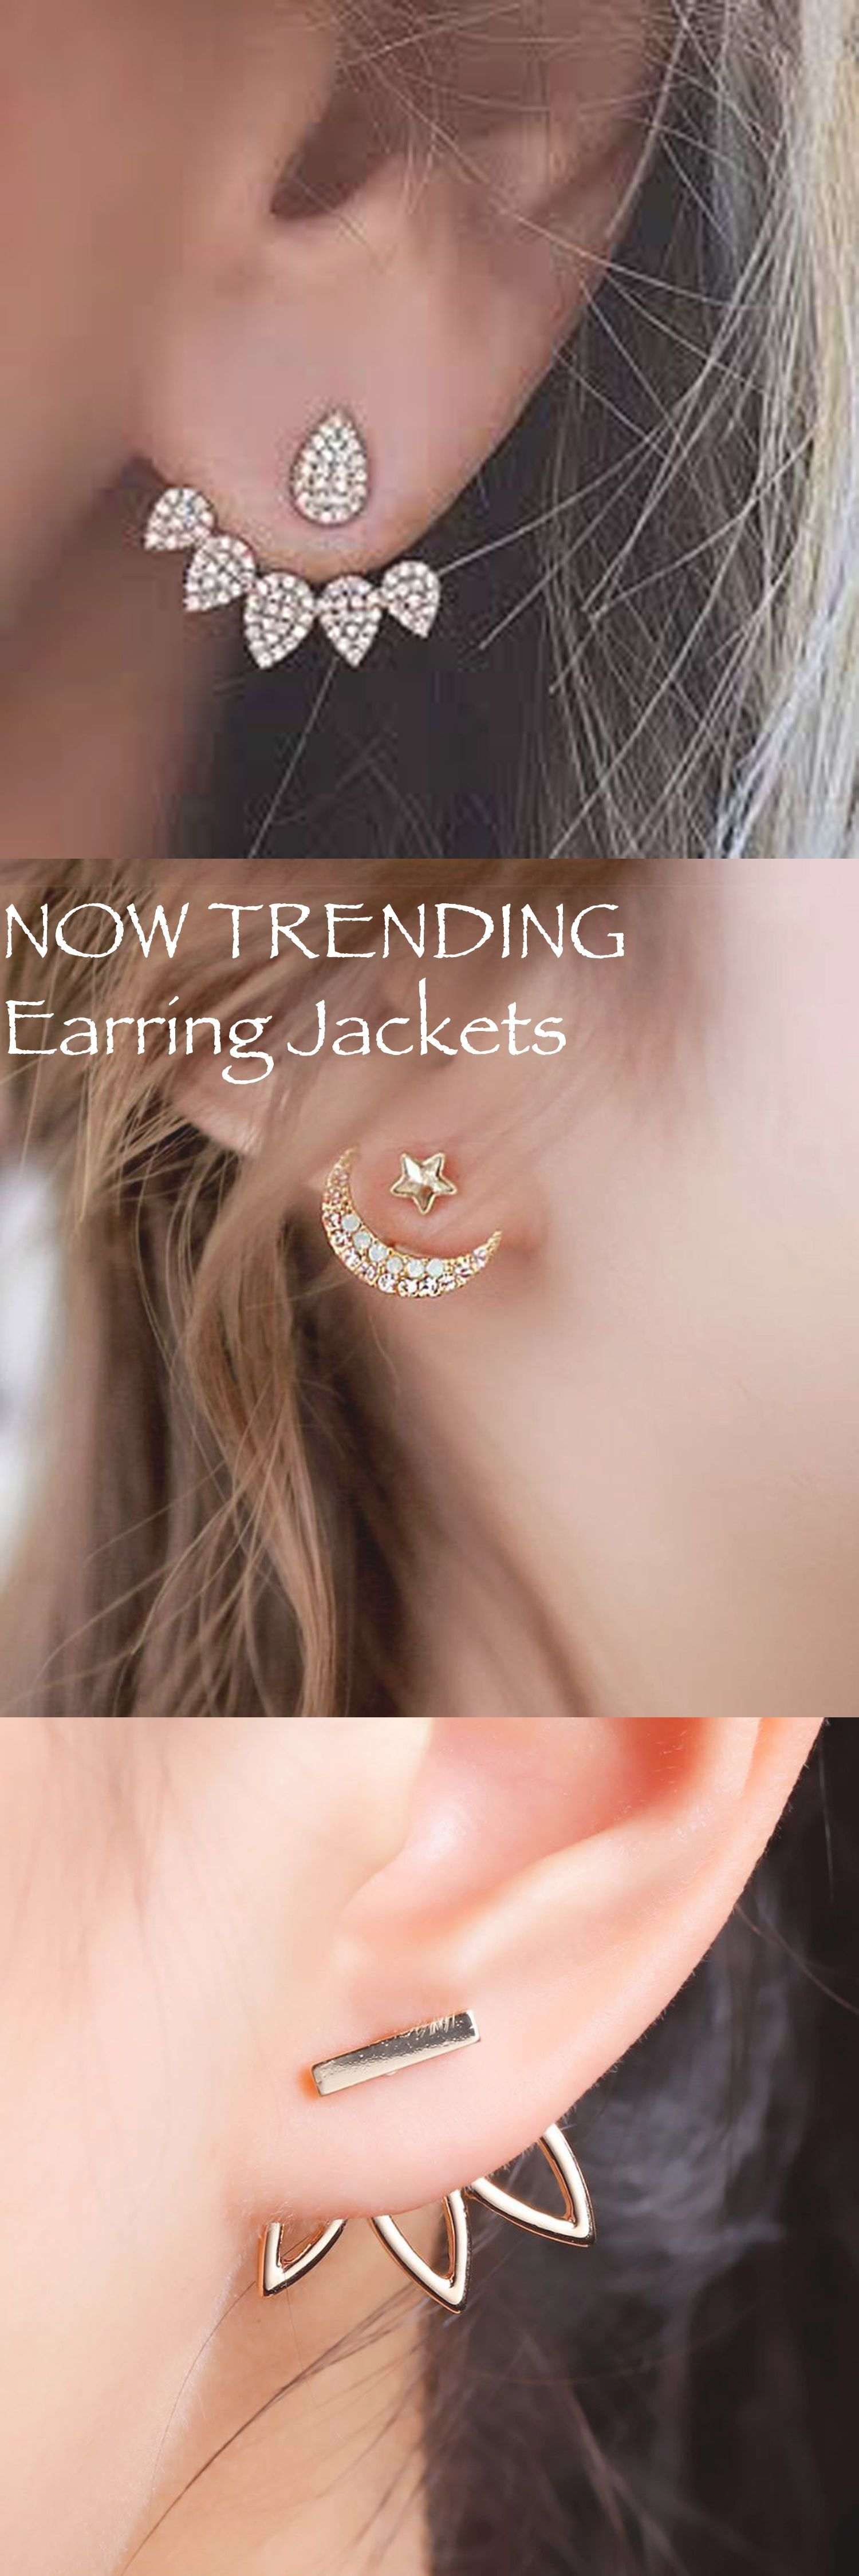 Earring piercing ideas  Cute Ear Piercing Ideas for the Minimalistic Chic at MyBodiArt